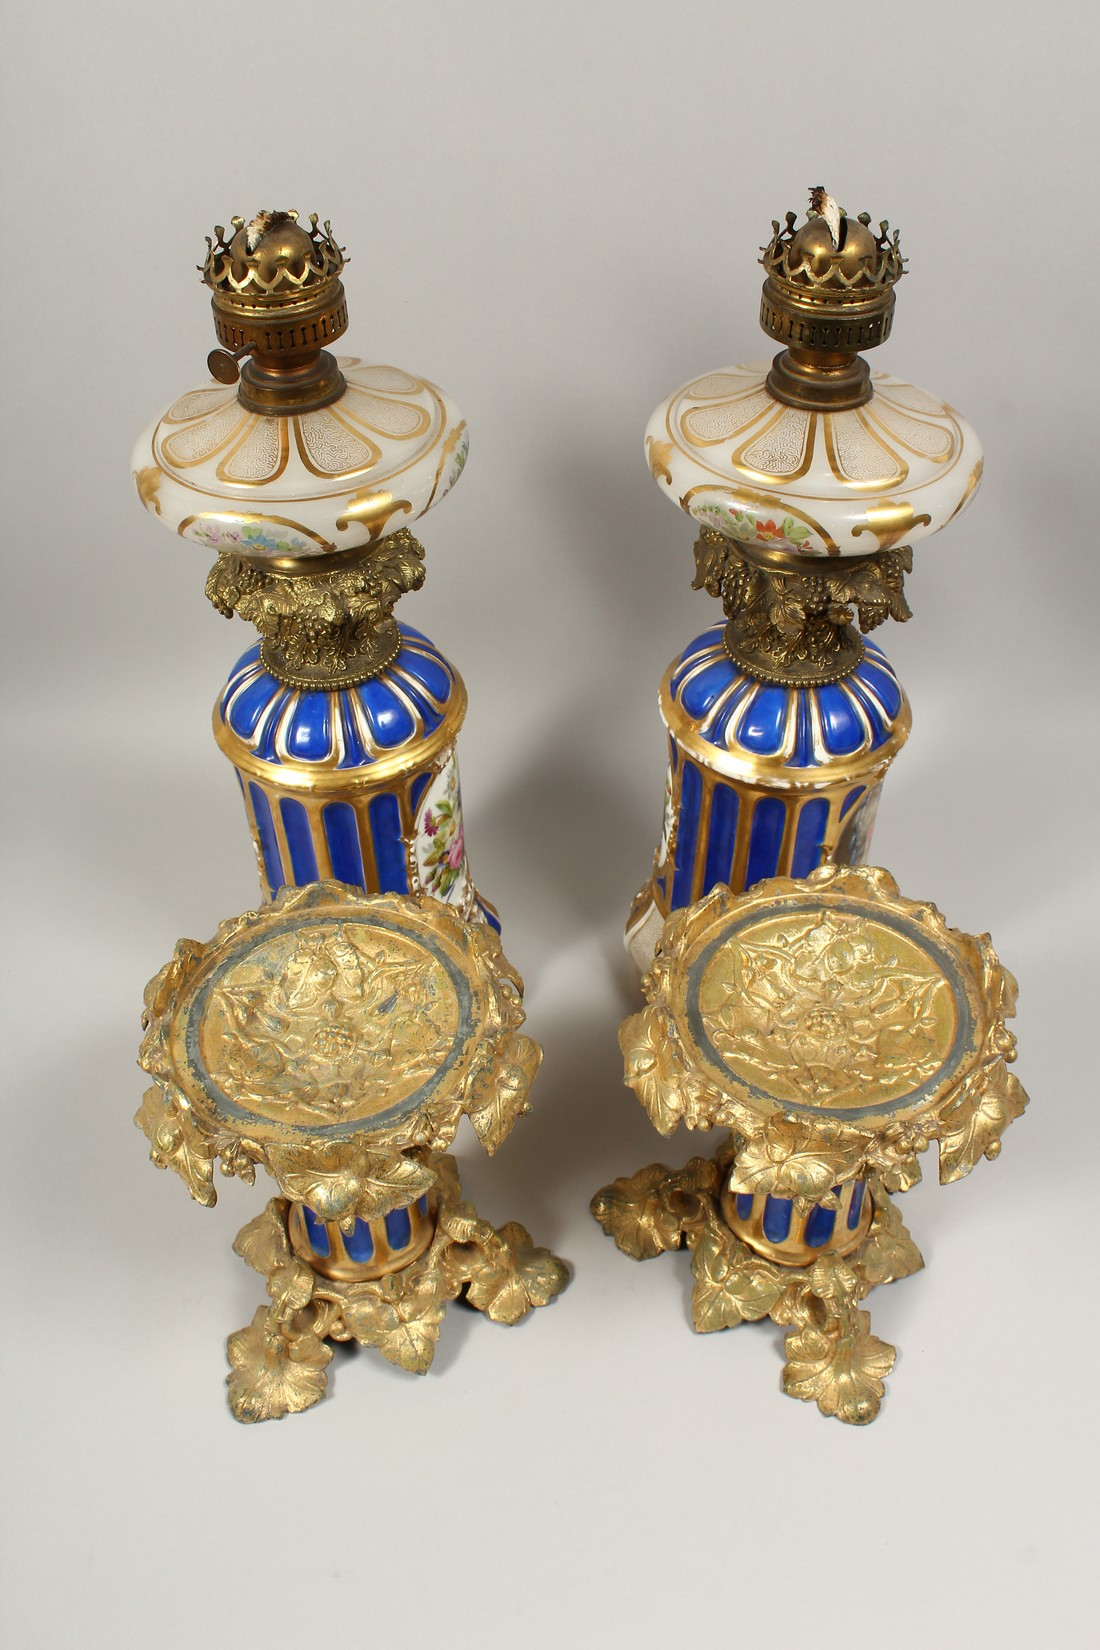 A SUPERB PAIR OF 19TH CENTURY FRENCH PORCELAIN AND GILT BRONZE LAMPS ON STANDS, painted with - Image 21 of 24